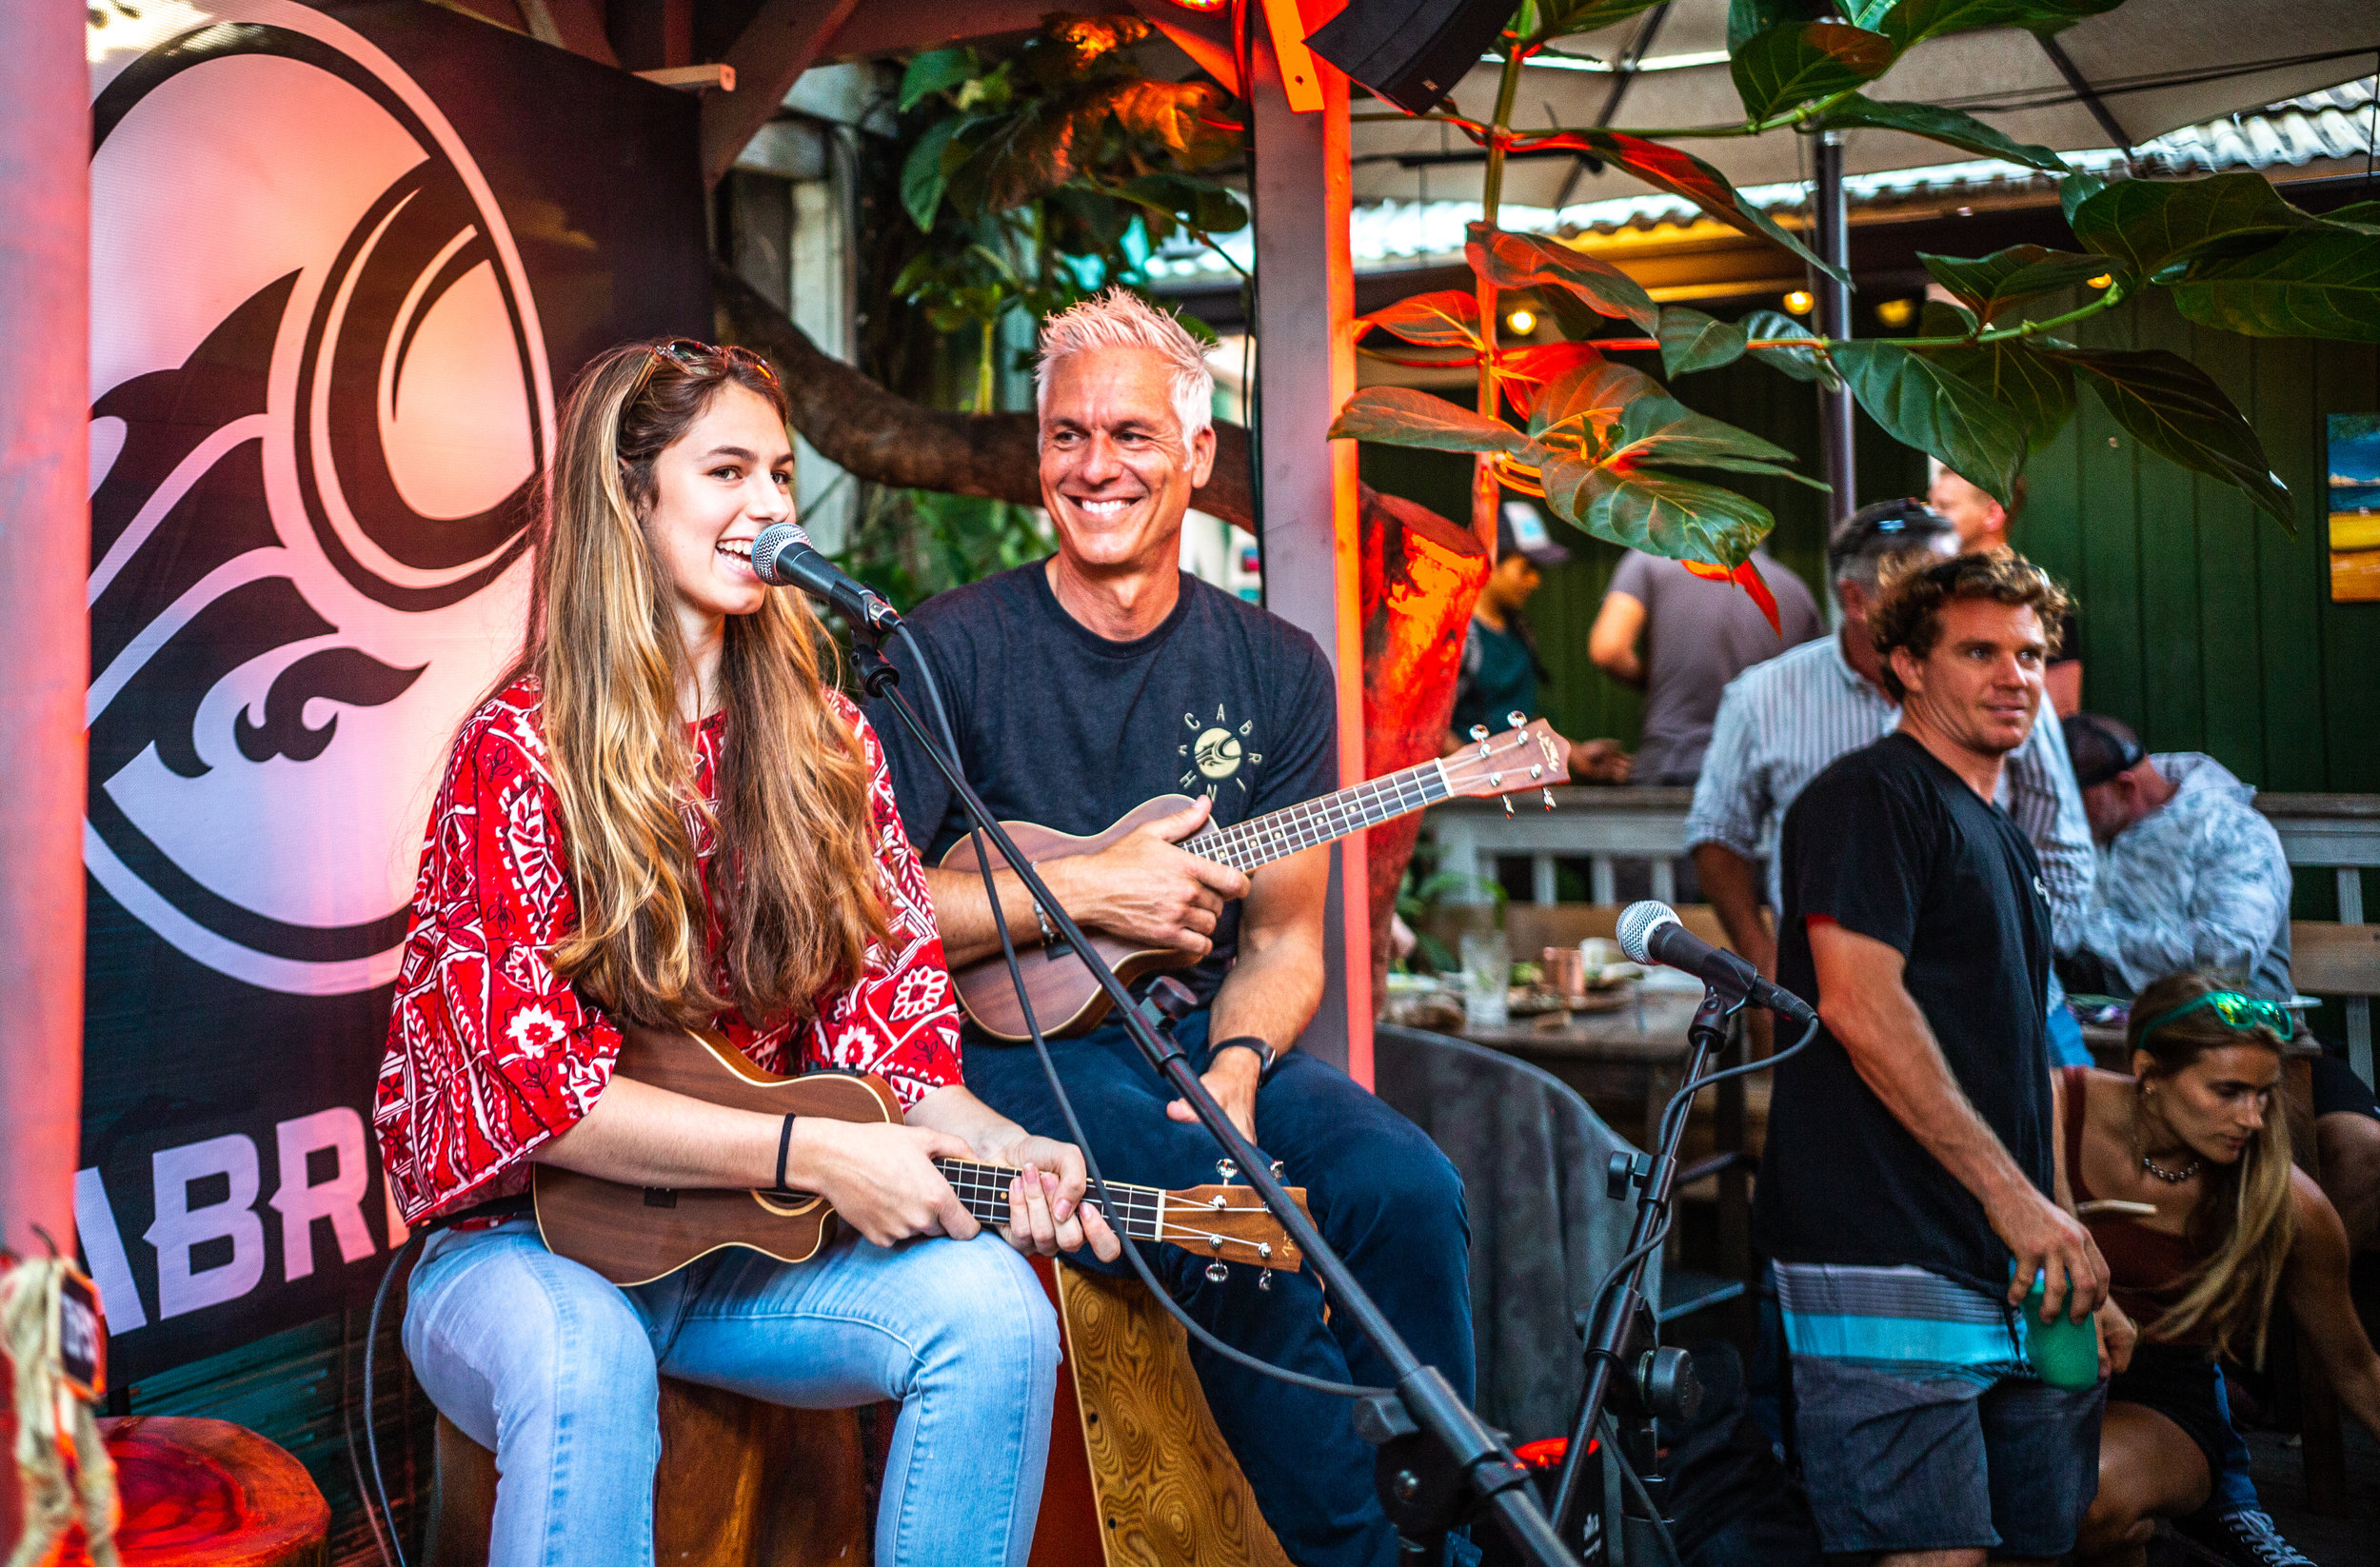 Pete Cabrinha and his daughter Tahiti playing music together and now kiting together!